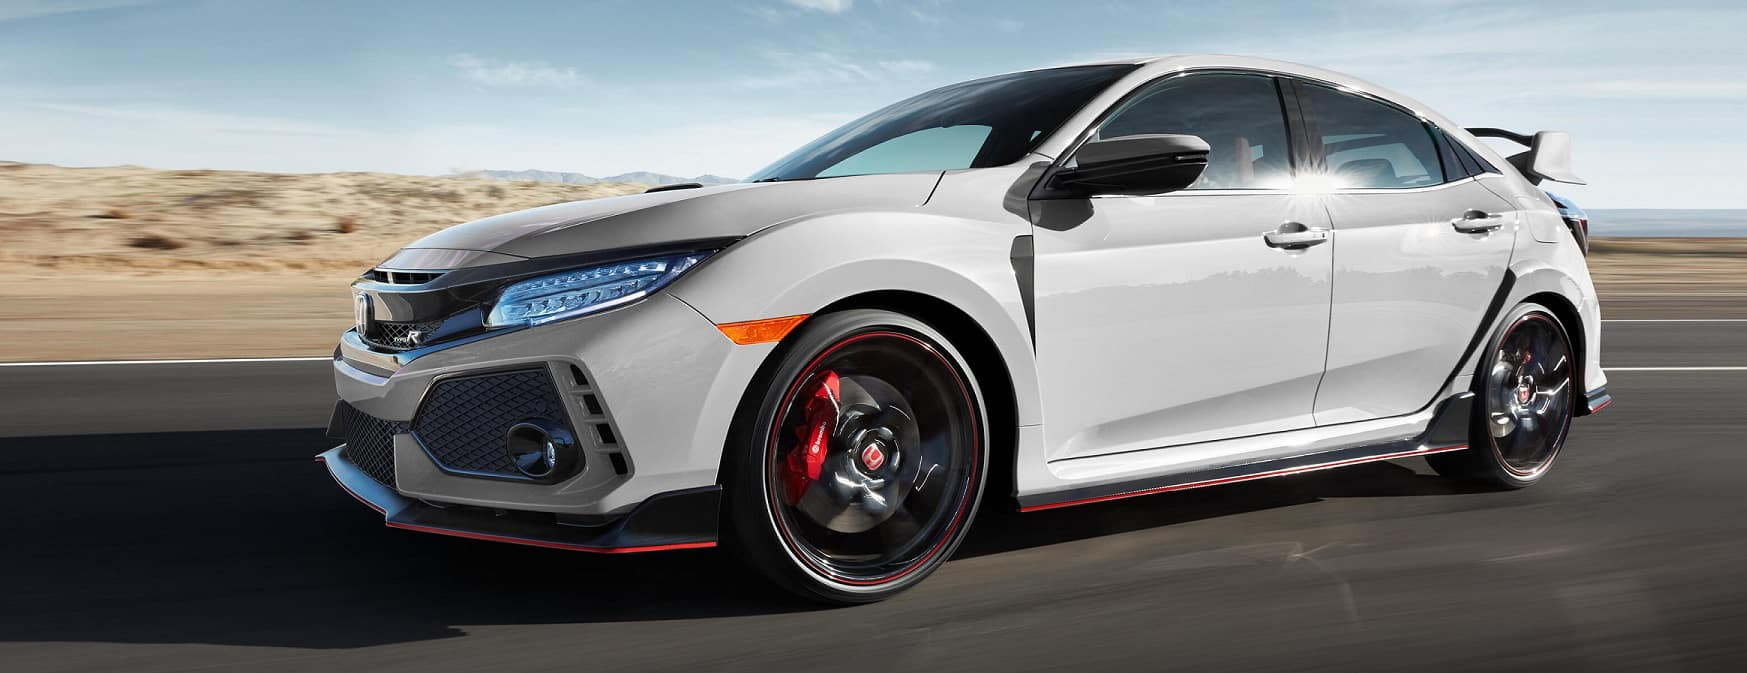 Honda Civic New >> 2019 Honda Civic Sedan Trim Level Comparison Castle Honda